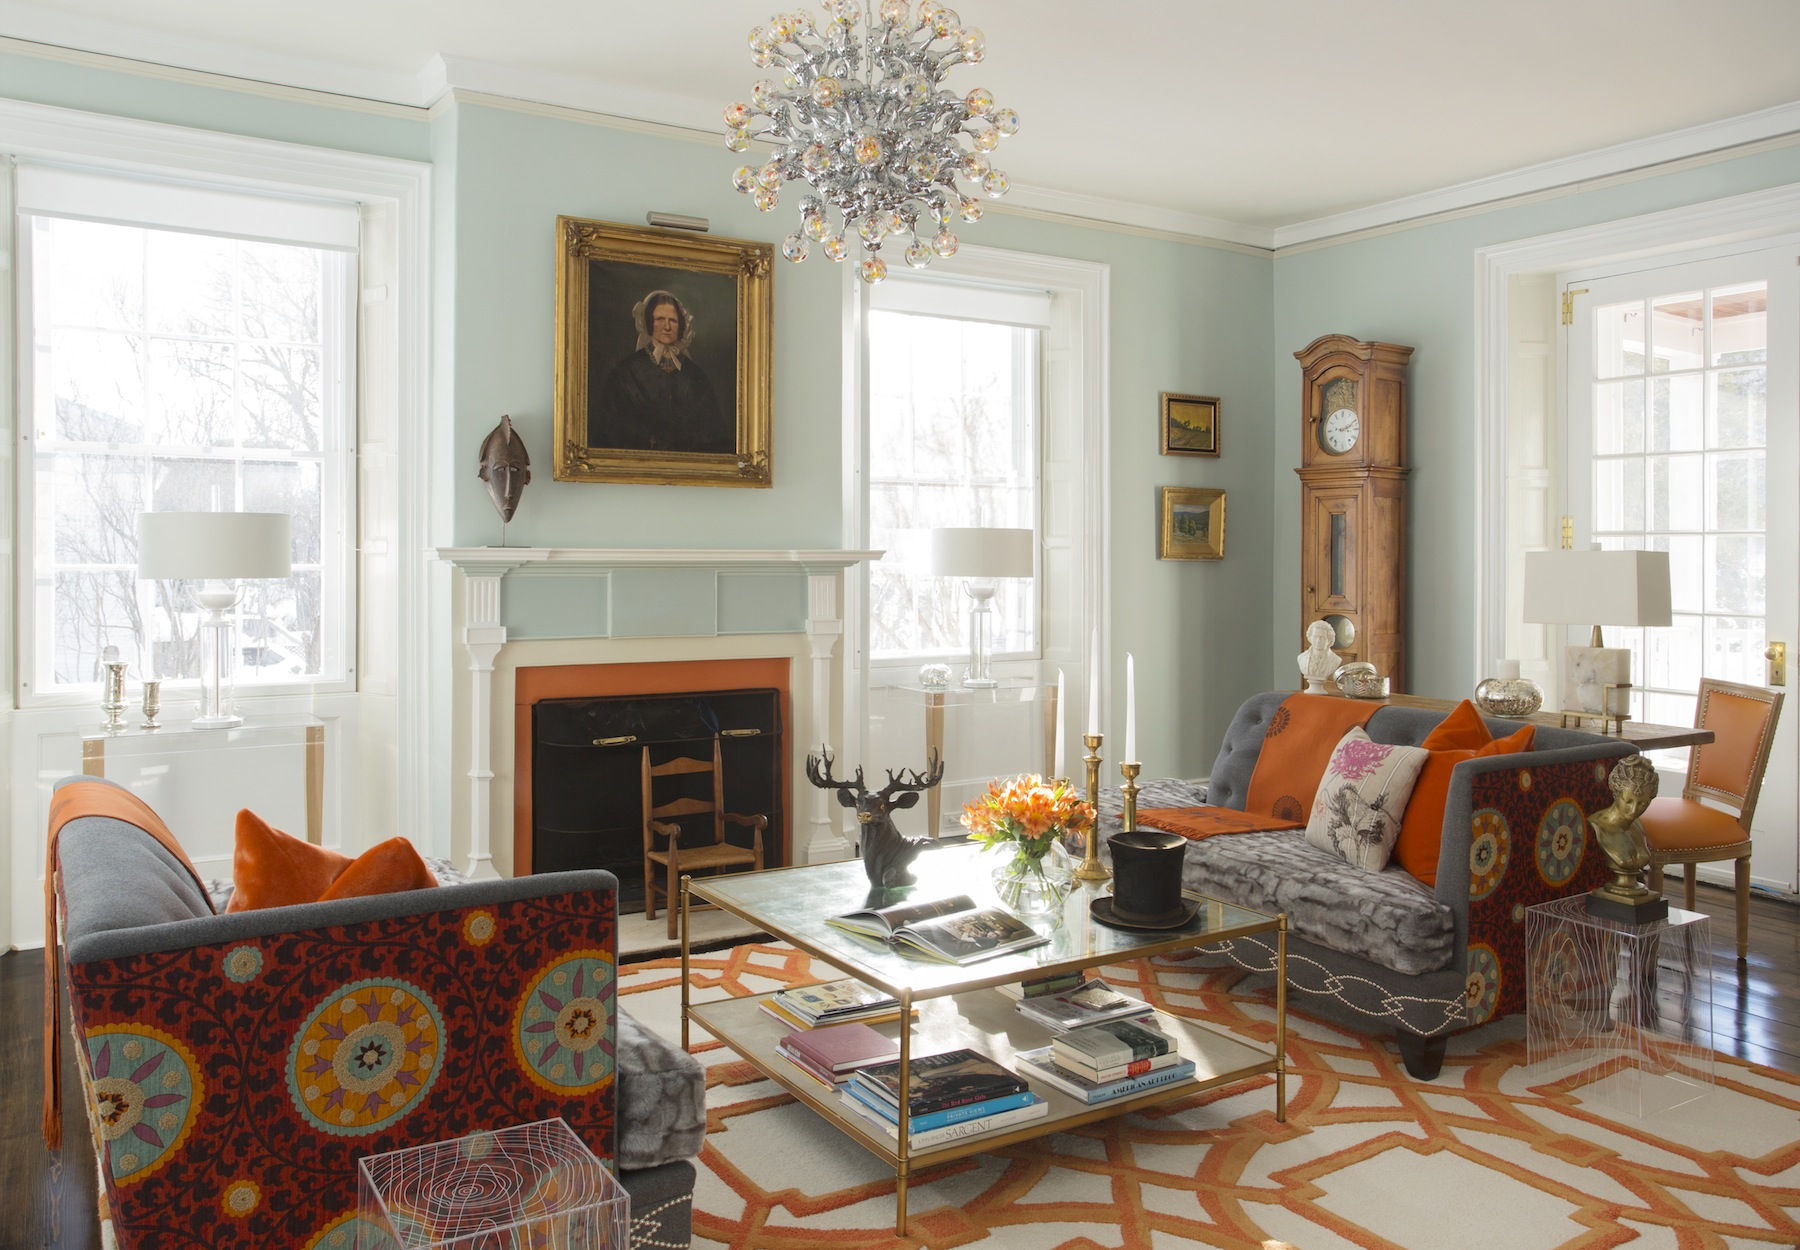 Interior designer steven favreau of favreau design to be - Federal style interior decorating ...